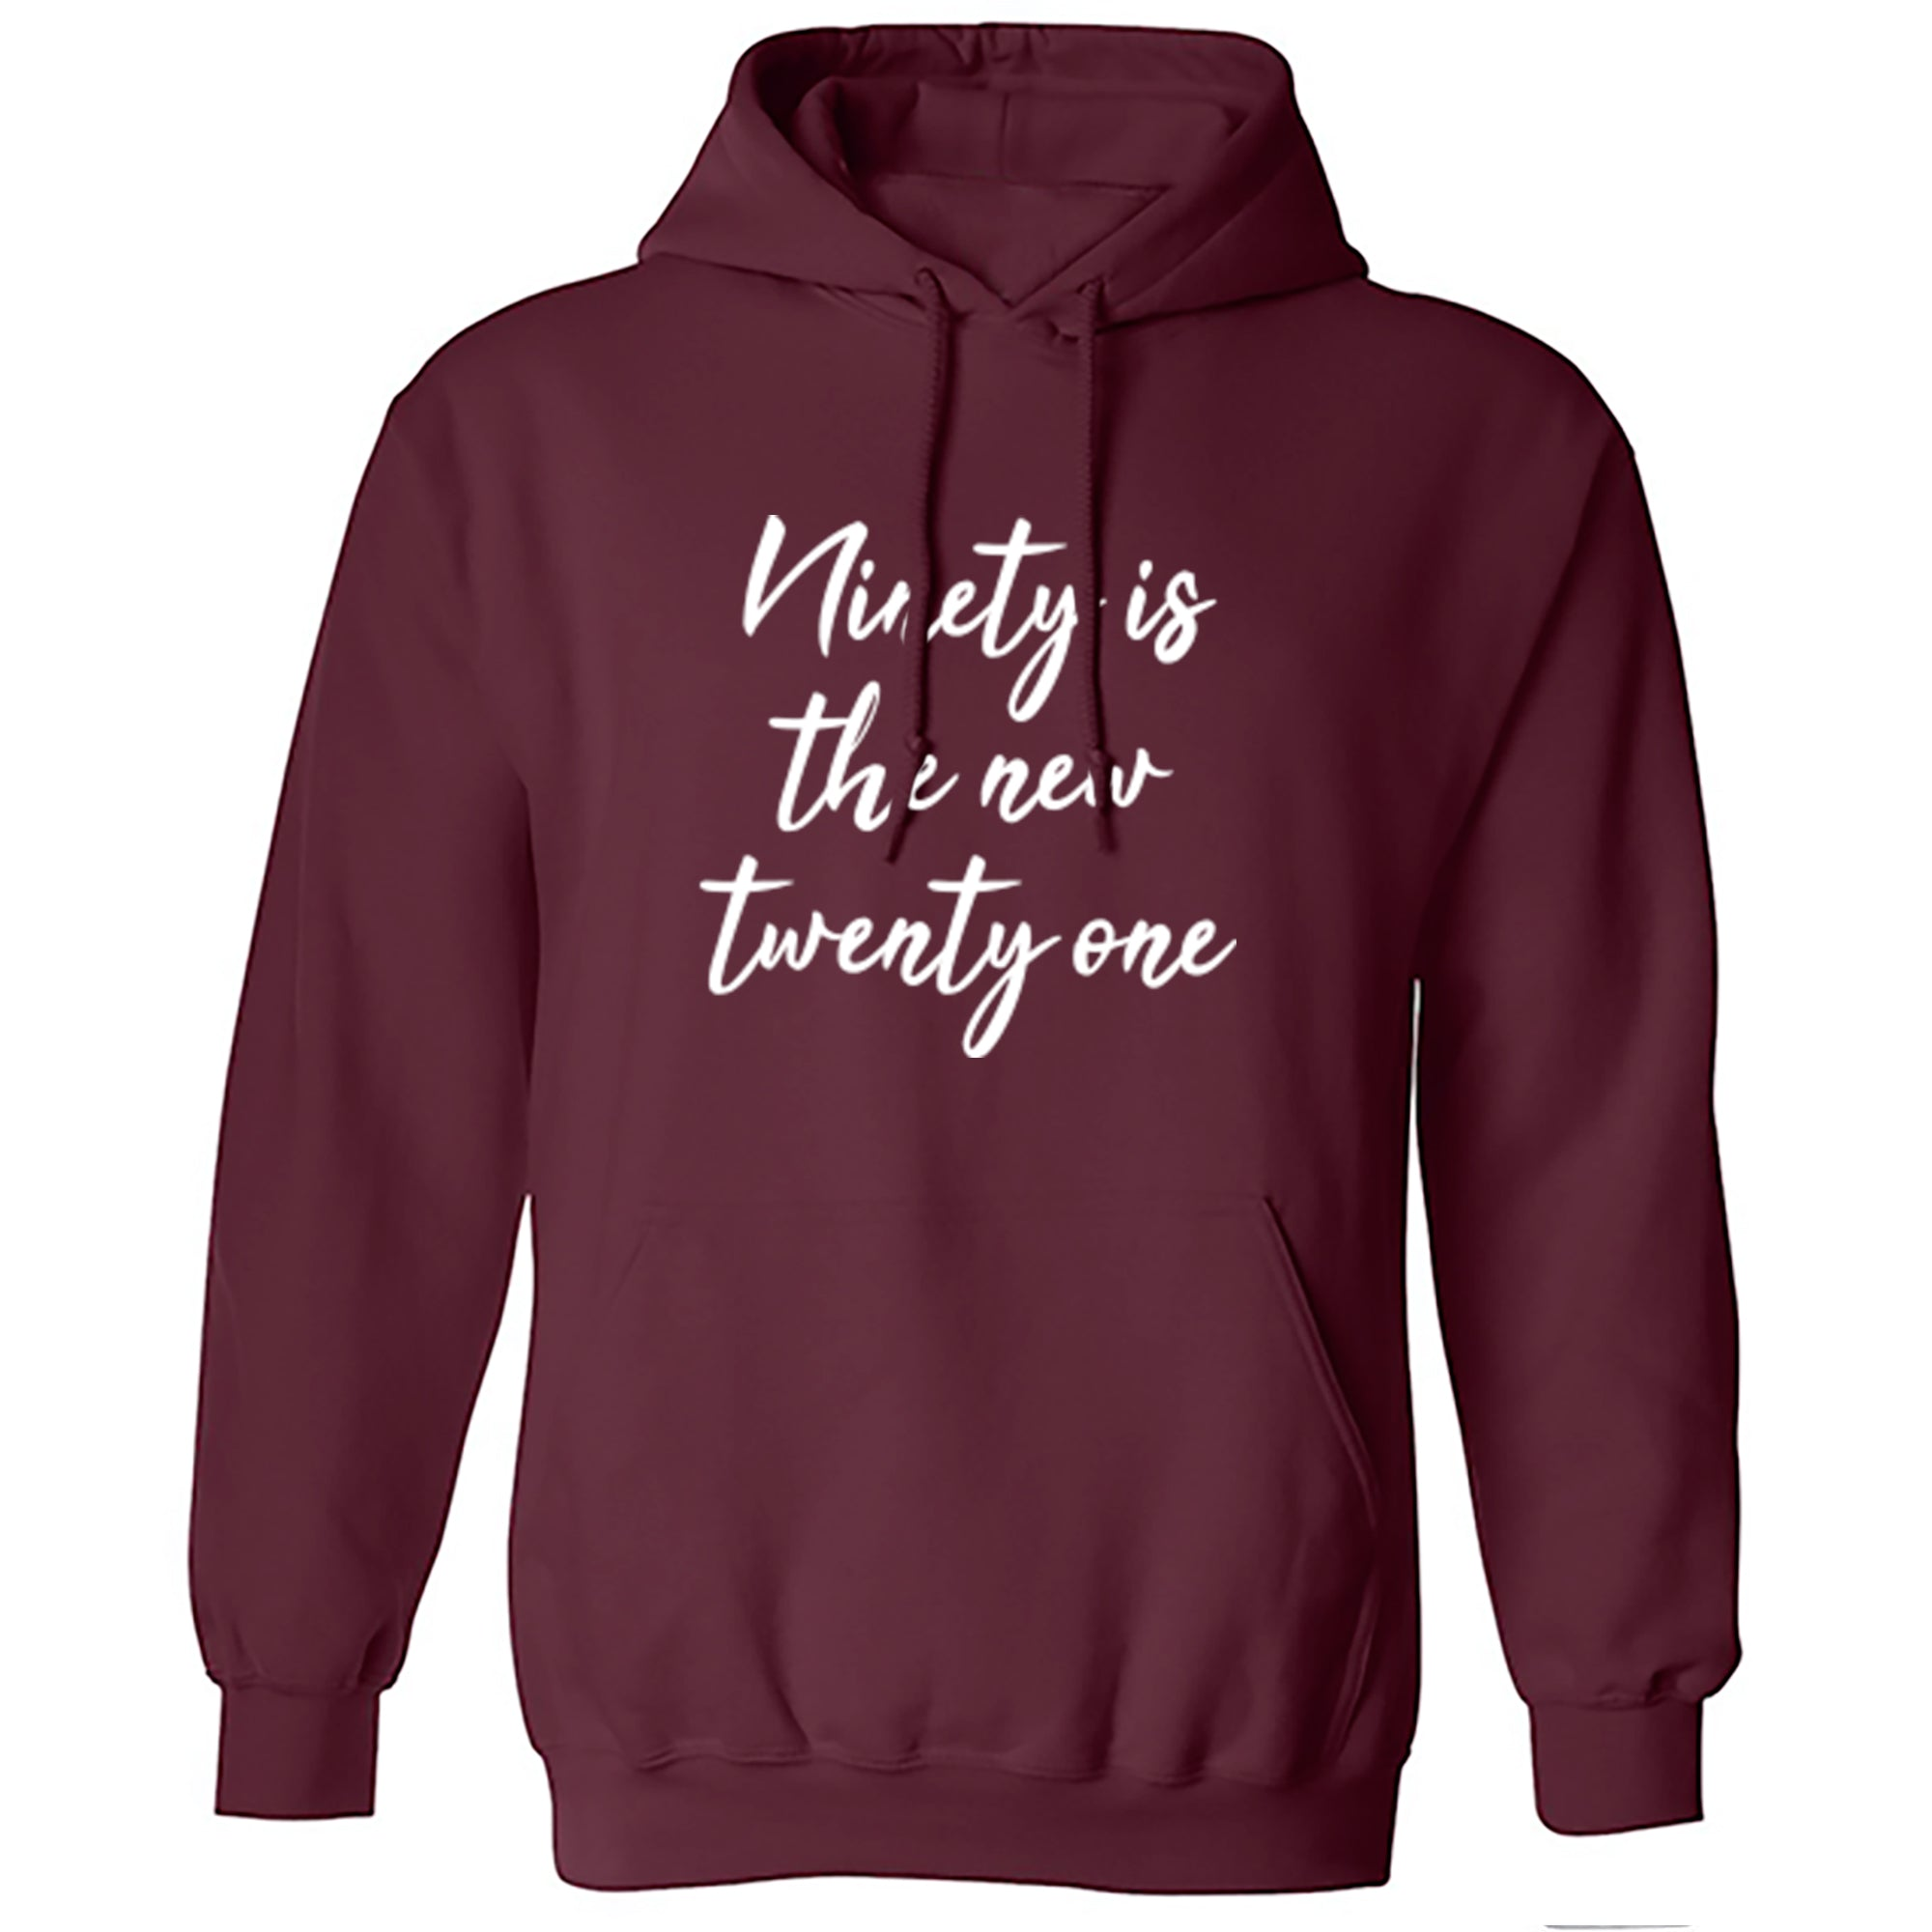 Ninety Is The New Twenty One Unisex Hoodie S0611 - Illustrated Identity Ltd.